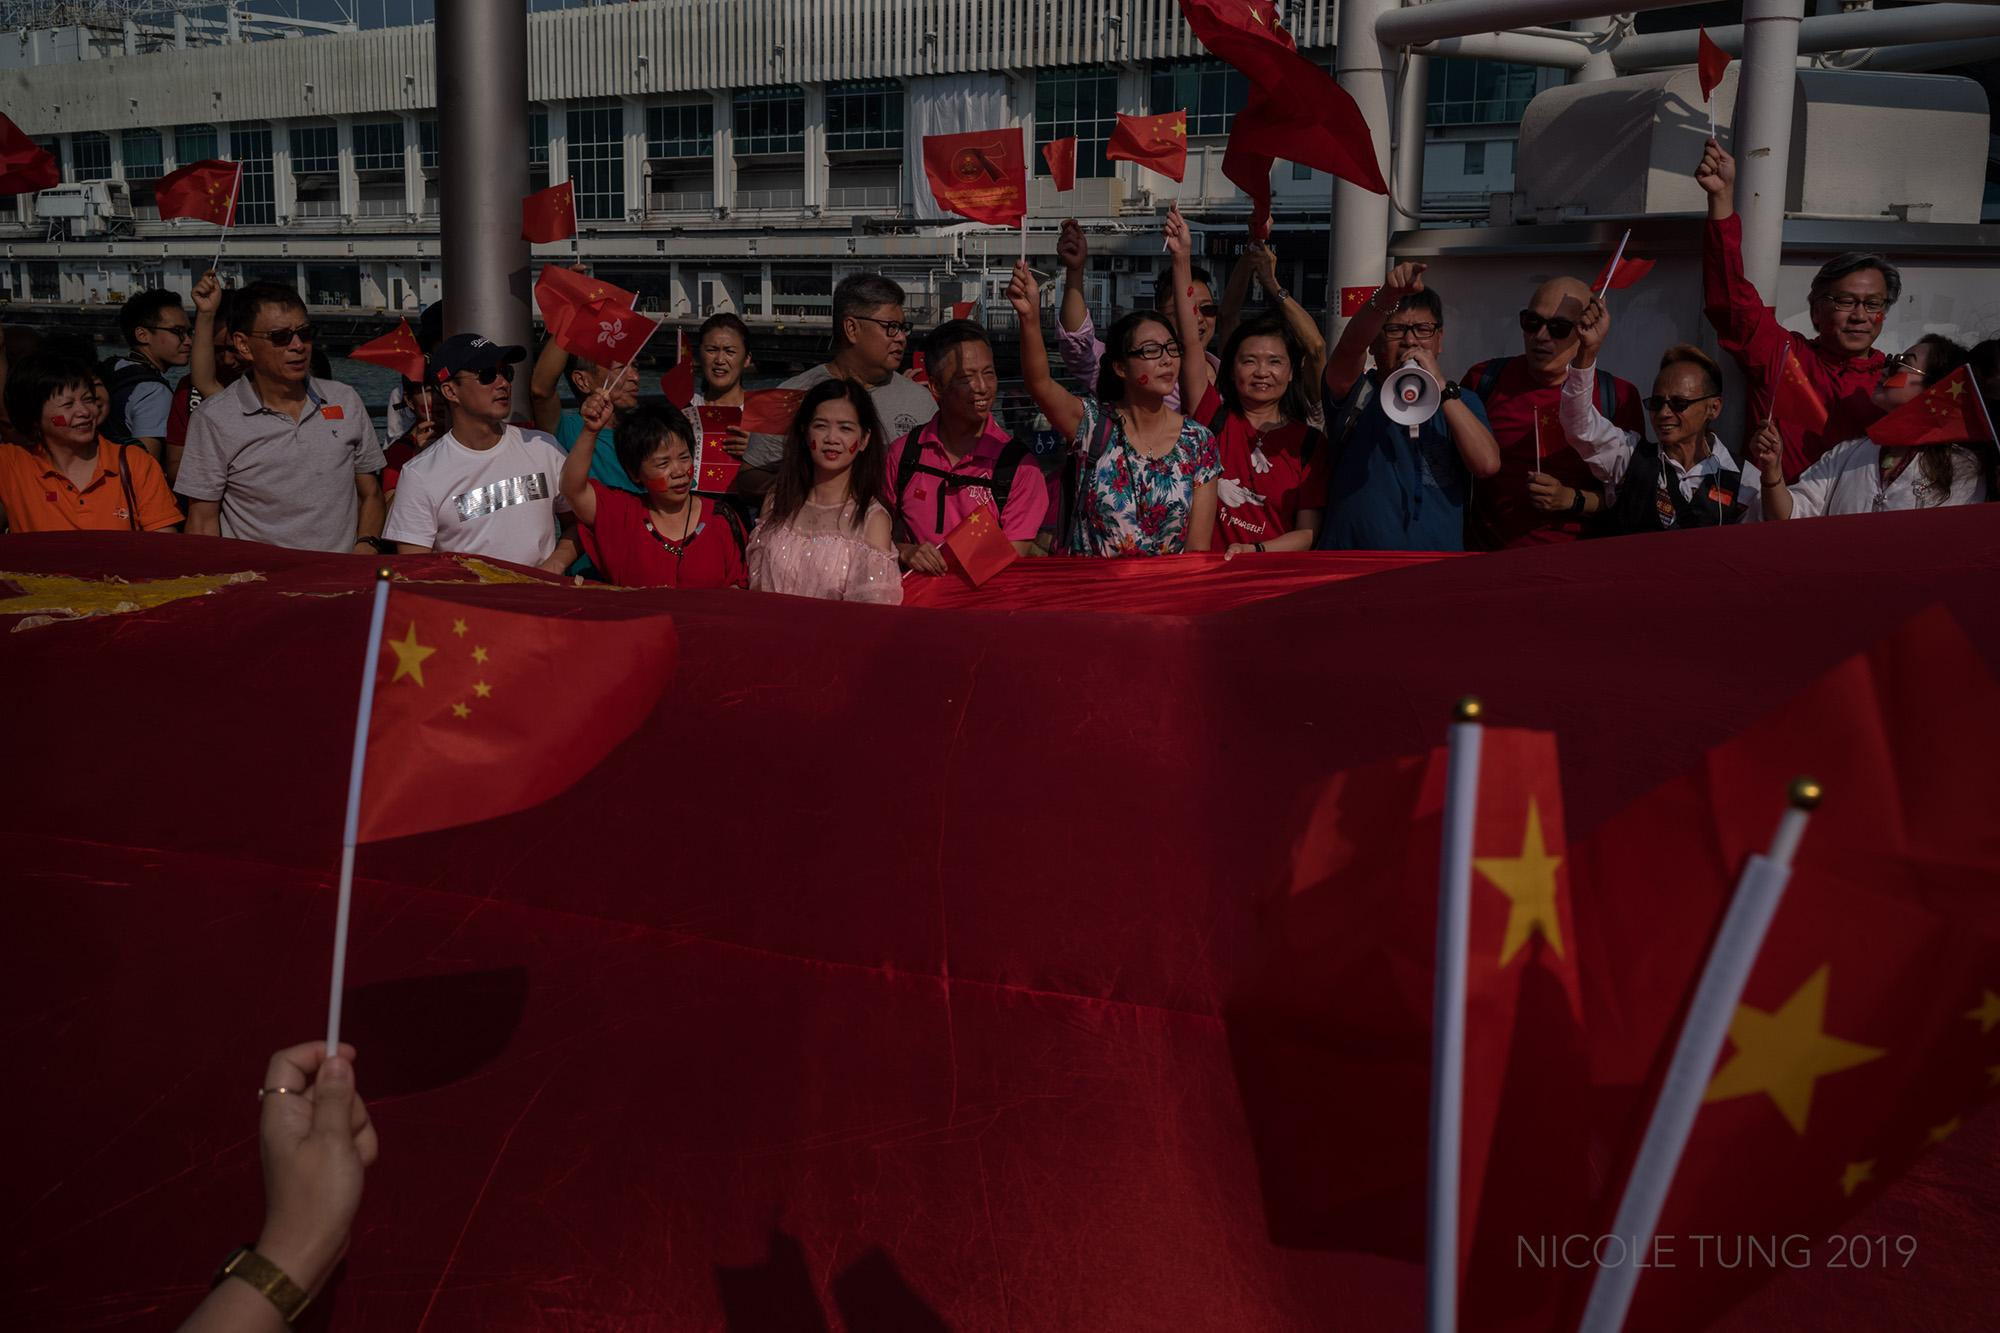 People celebrate the 70th anniversary of the Peoples' Republic of China as several dozen people joined a gathering to show their support of the Chinese government despite concerns that anti-government protests would continue on the day, in Hong Kong, S.A.R. October 1, 2019.